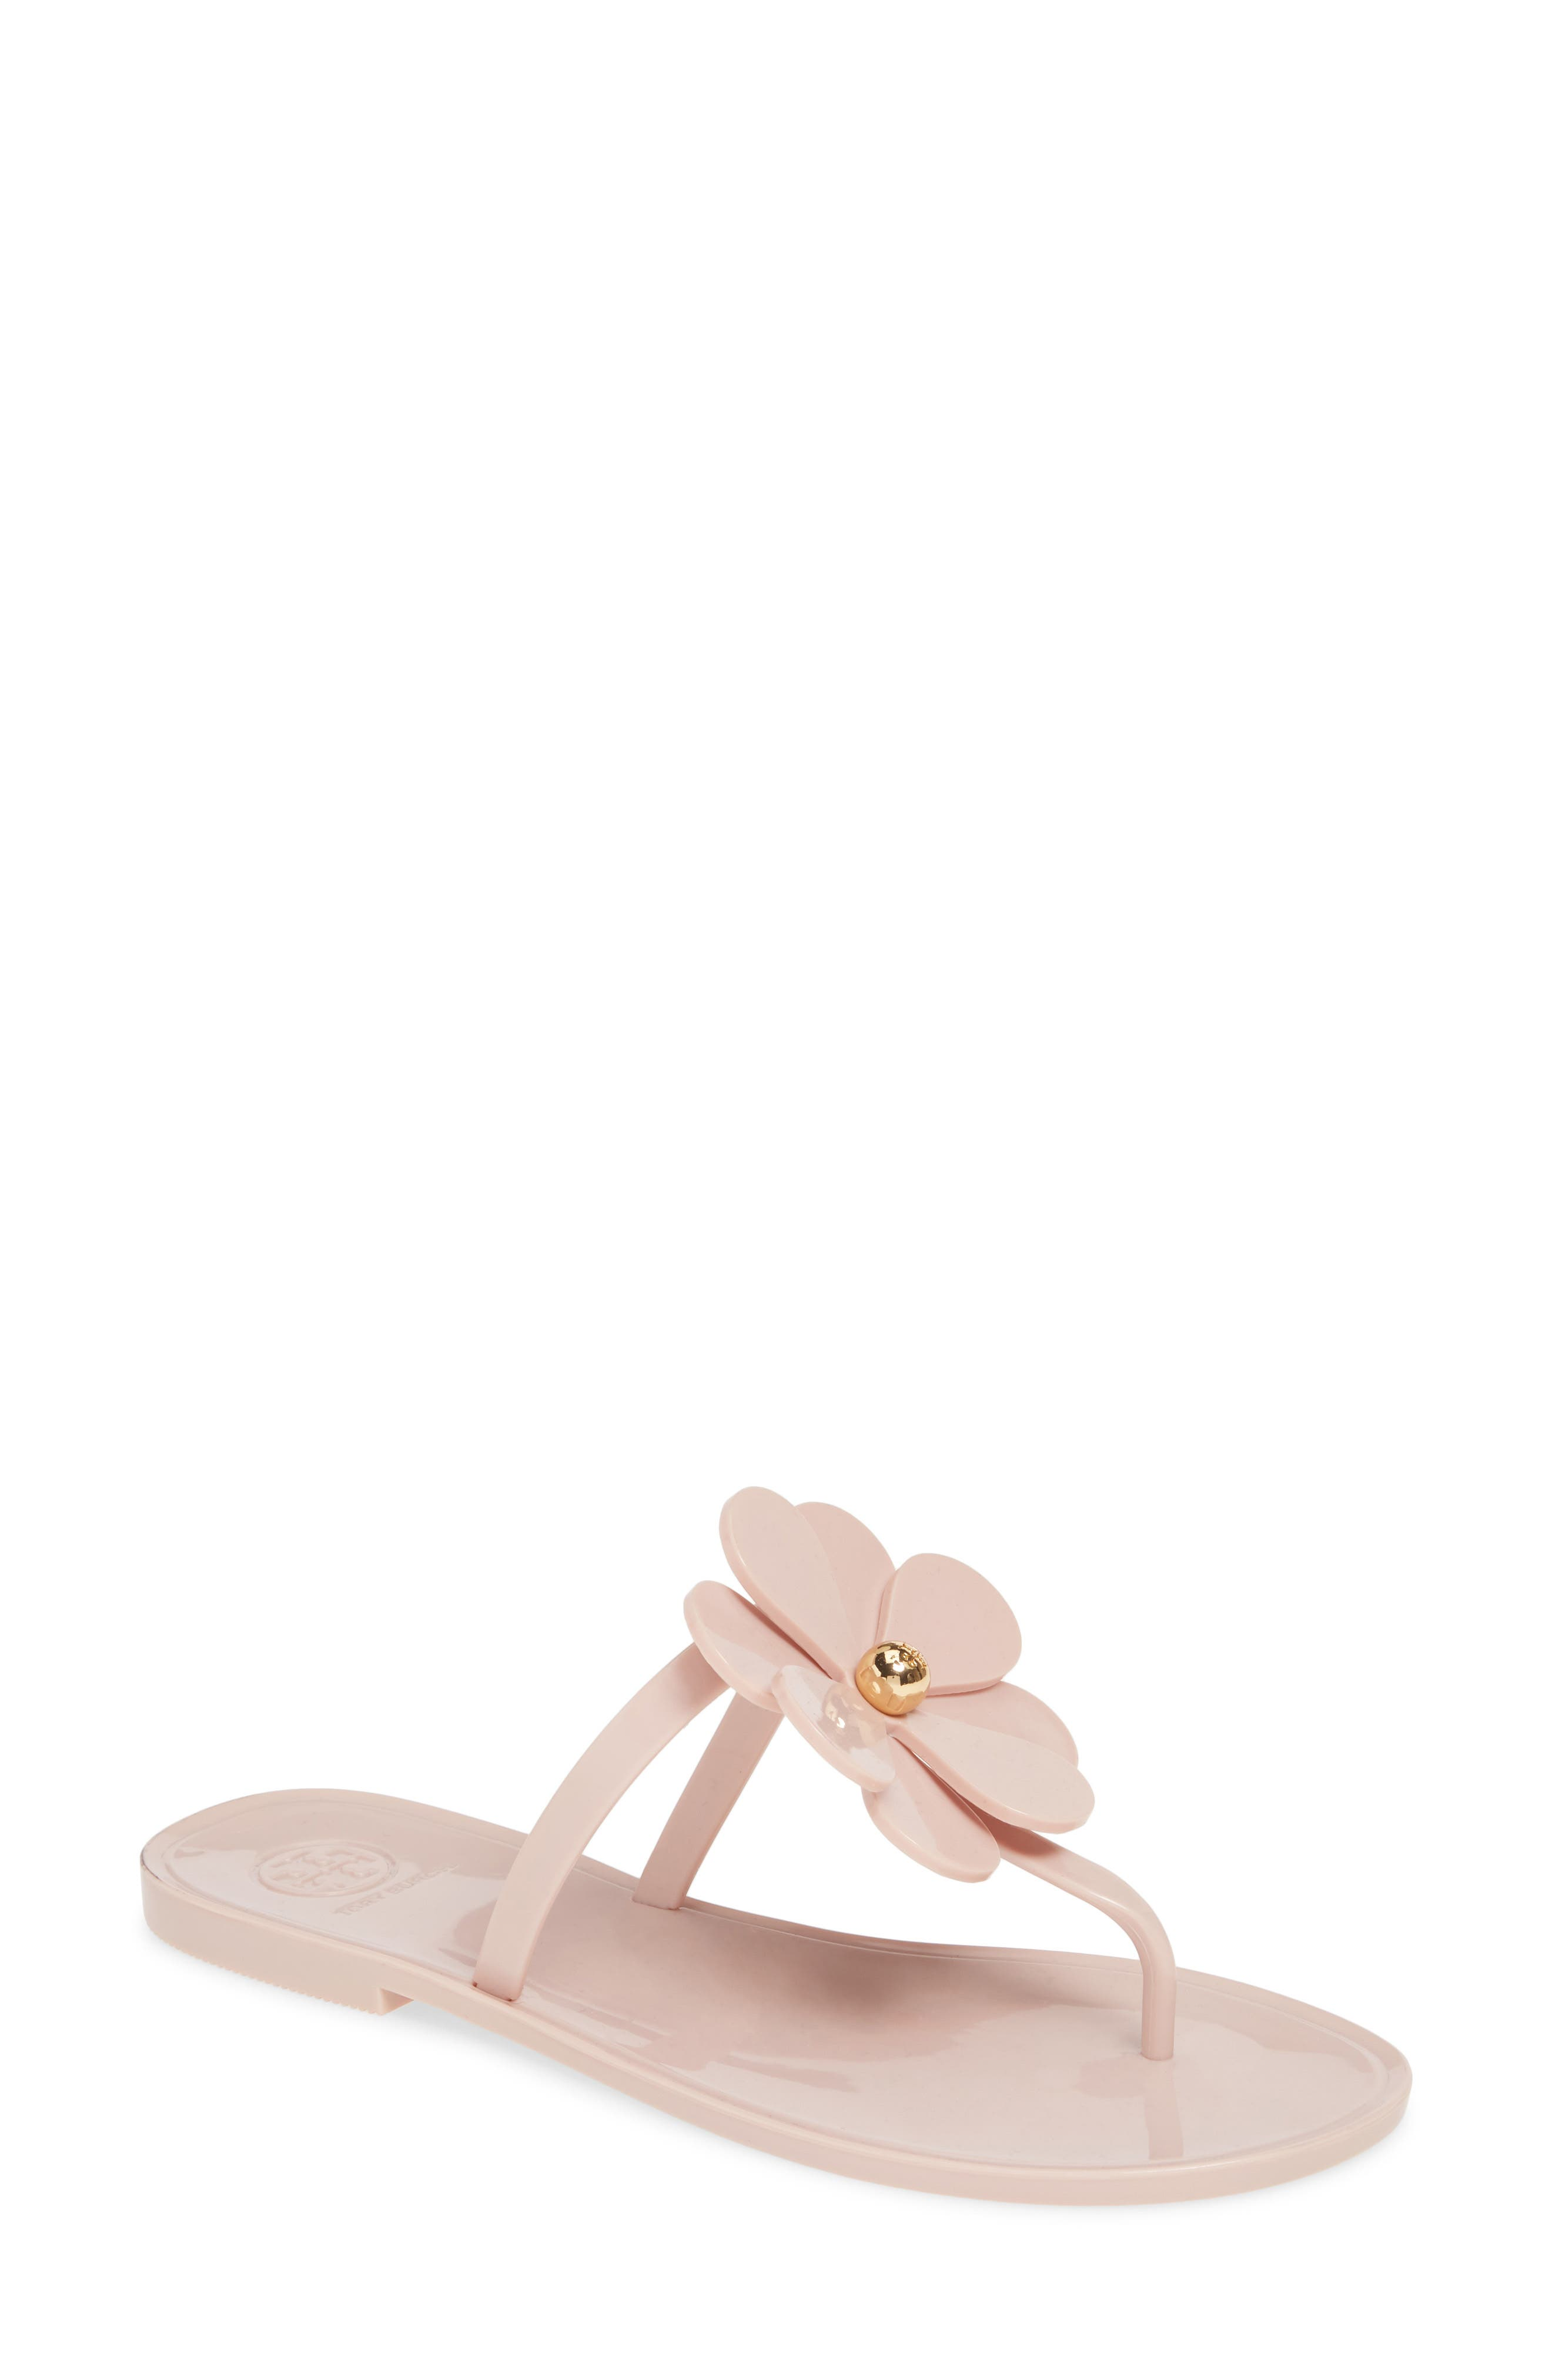 Tory Burch Floral Jelly Flip Flop, Pink